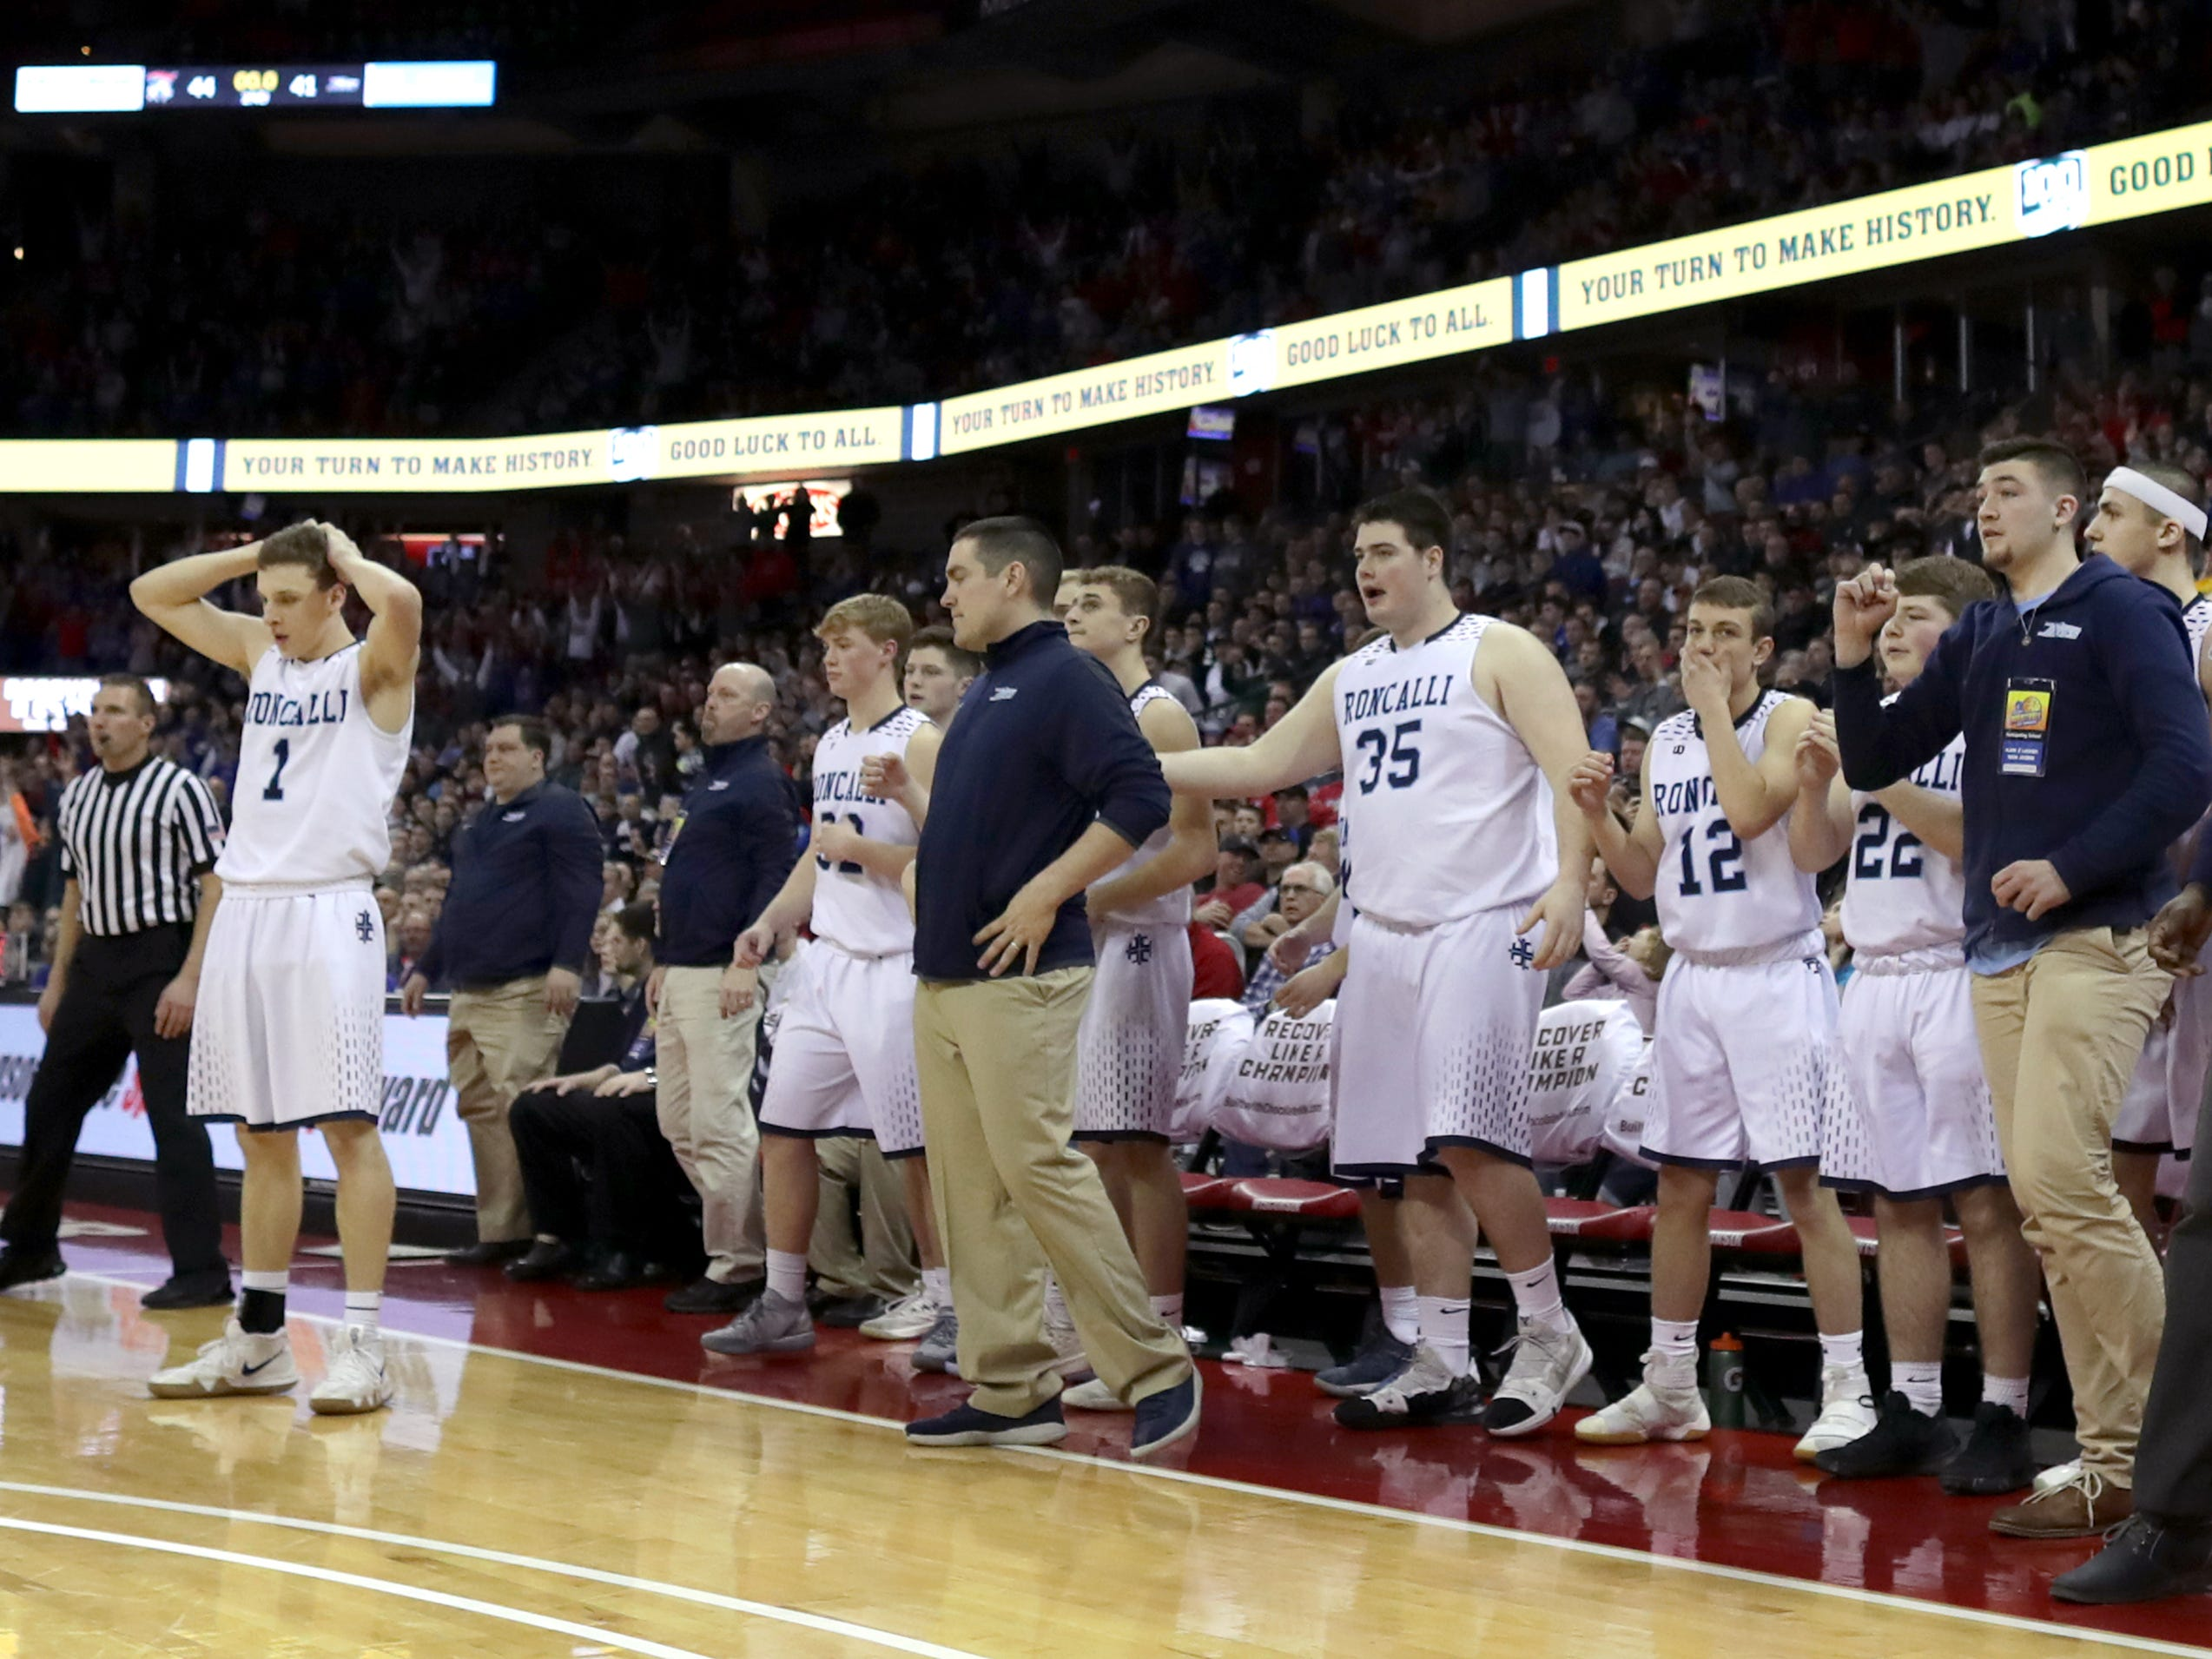 Roncalli High School's #1 Daniel Burgarino reacts as the clock runs out against New Glarus High School during their WIAA Division 4 boys basketball state semifinal on Thursday, March 14, 2019, at the KohlCenter in Madison, Wis. New Glarus defeated Roncalli 44 to 41. Wm. Glasheen/USA TODAY NETWORK-Wisconsin.